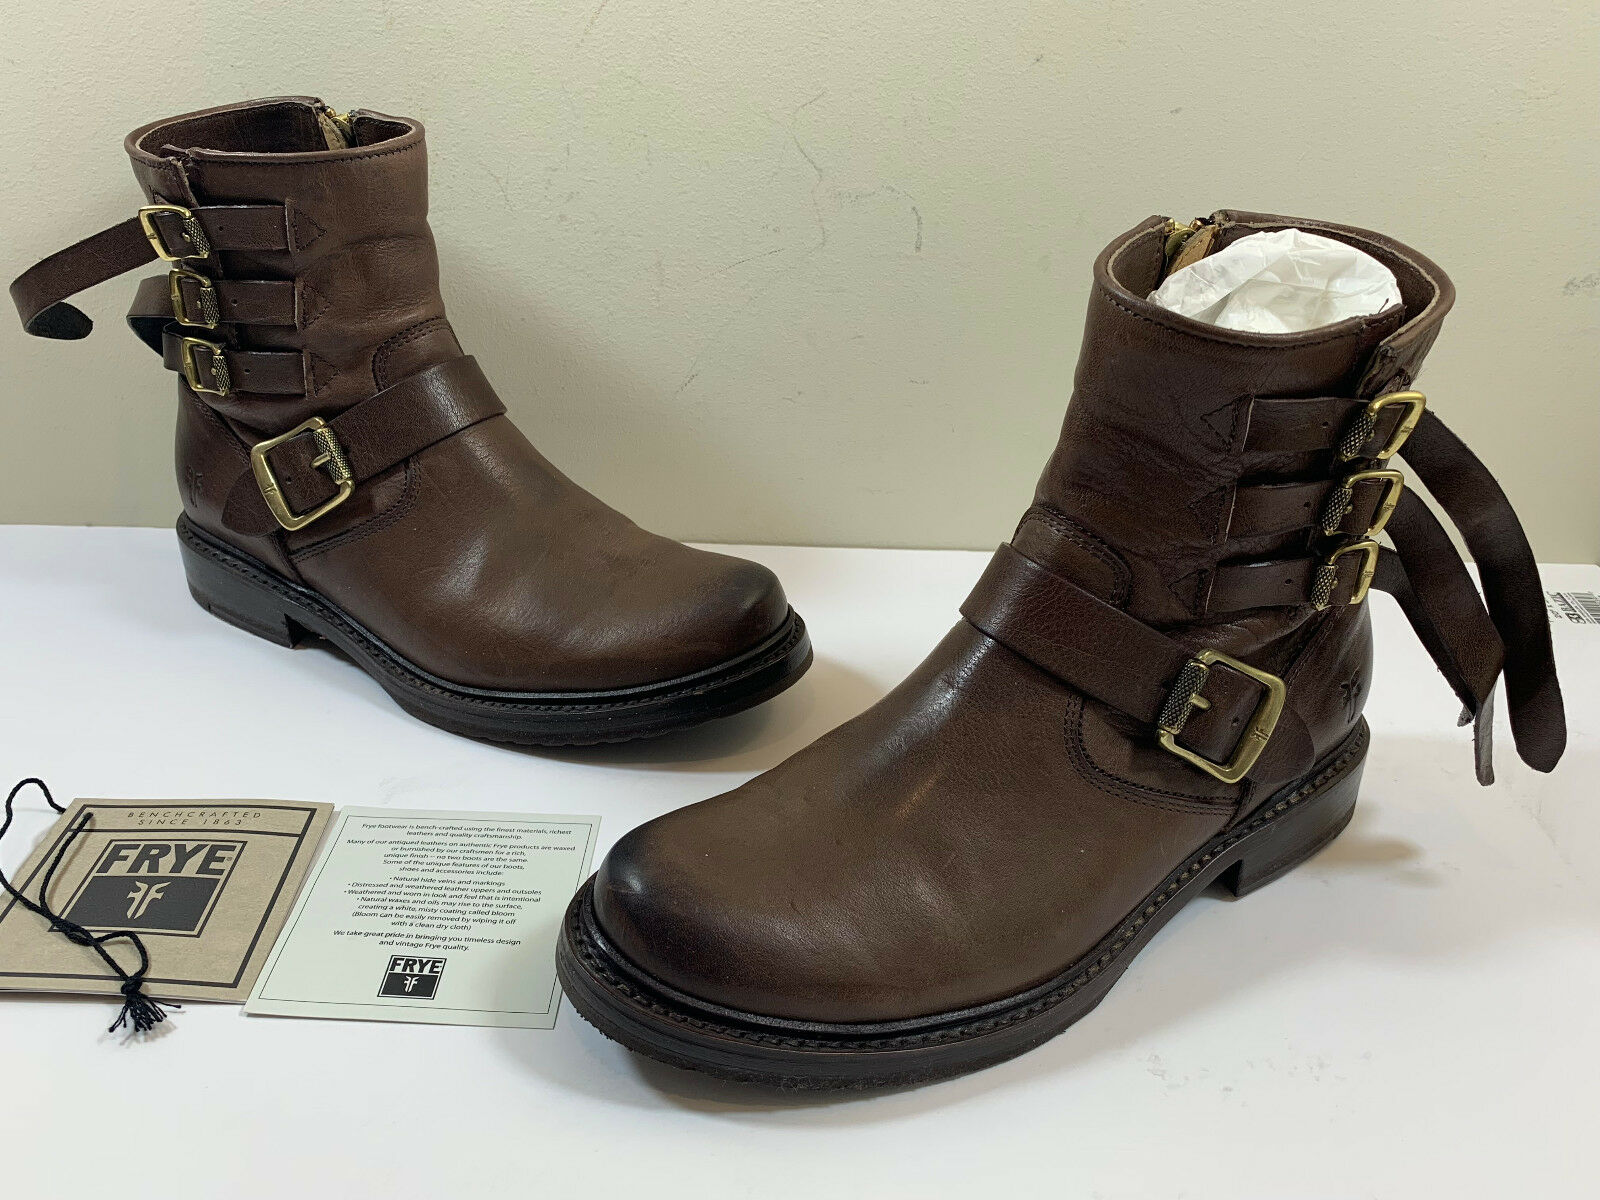 FRYE VERONICA STRAP SHORT Leather Boots - HTF CHOCOLATE  428 Ret